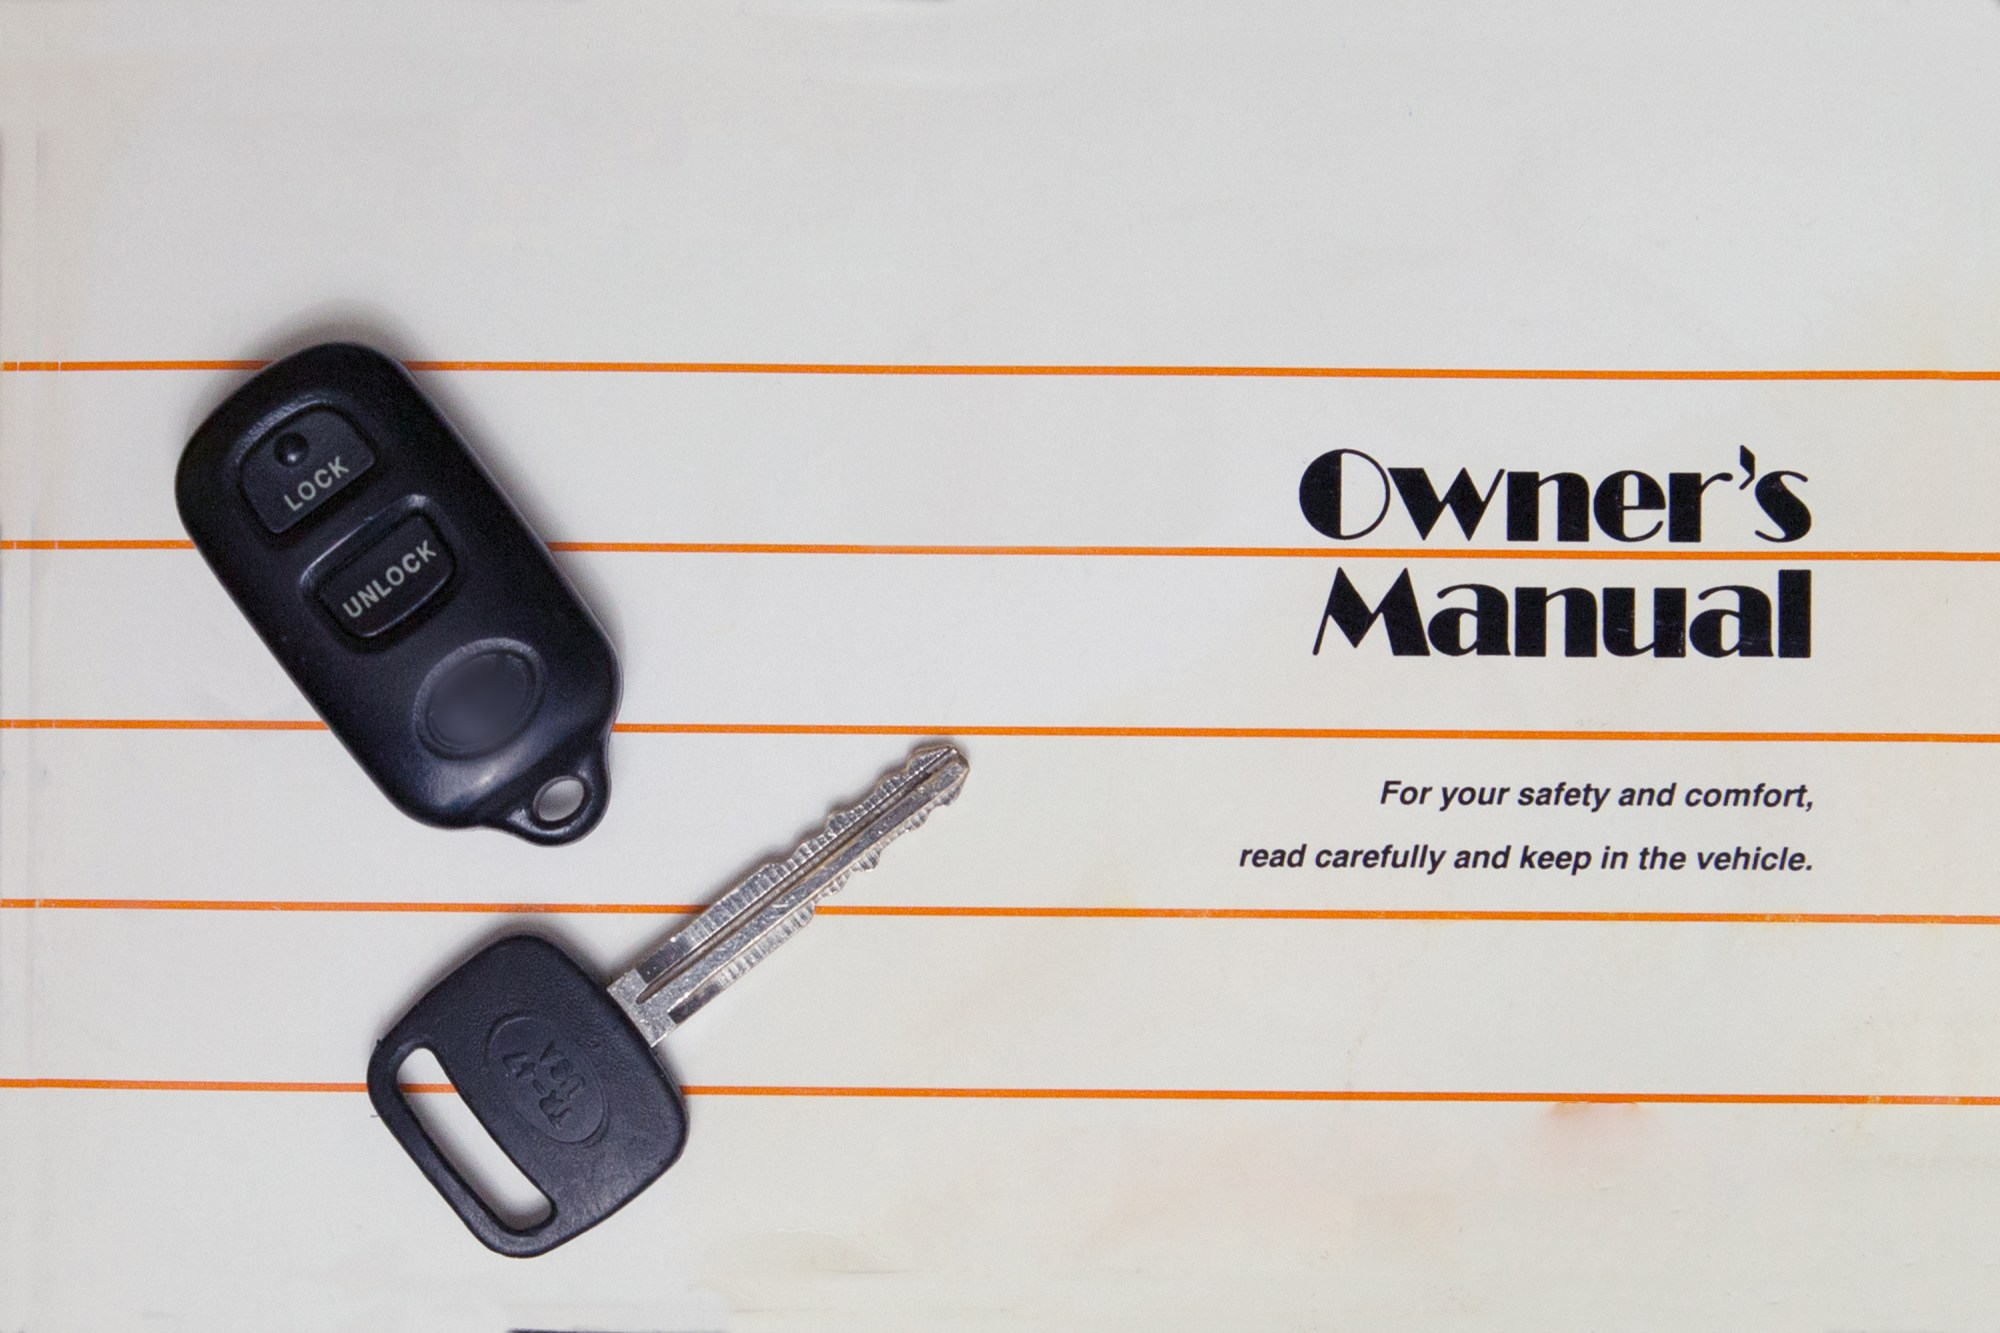 hight resolution of check your car s owner s manual if you have misplaced it go to the owner s manual source website here you can find hundreds of owner s manuals